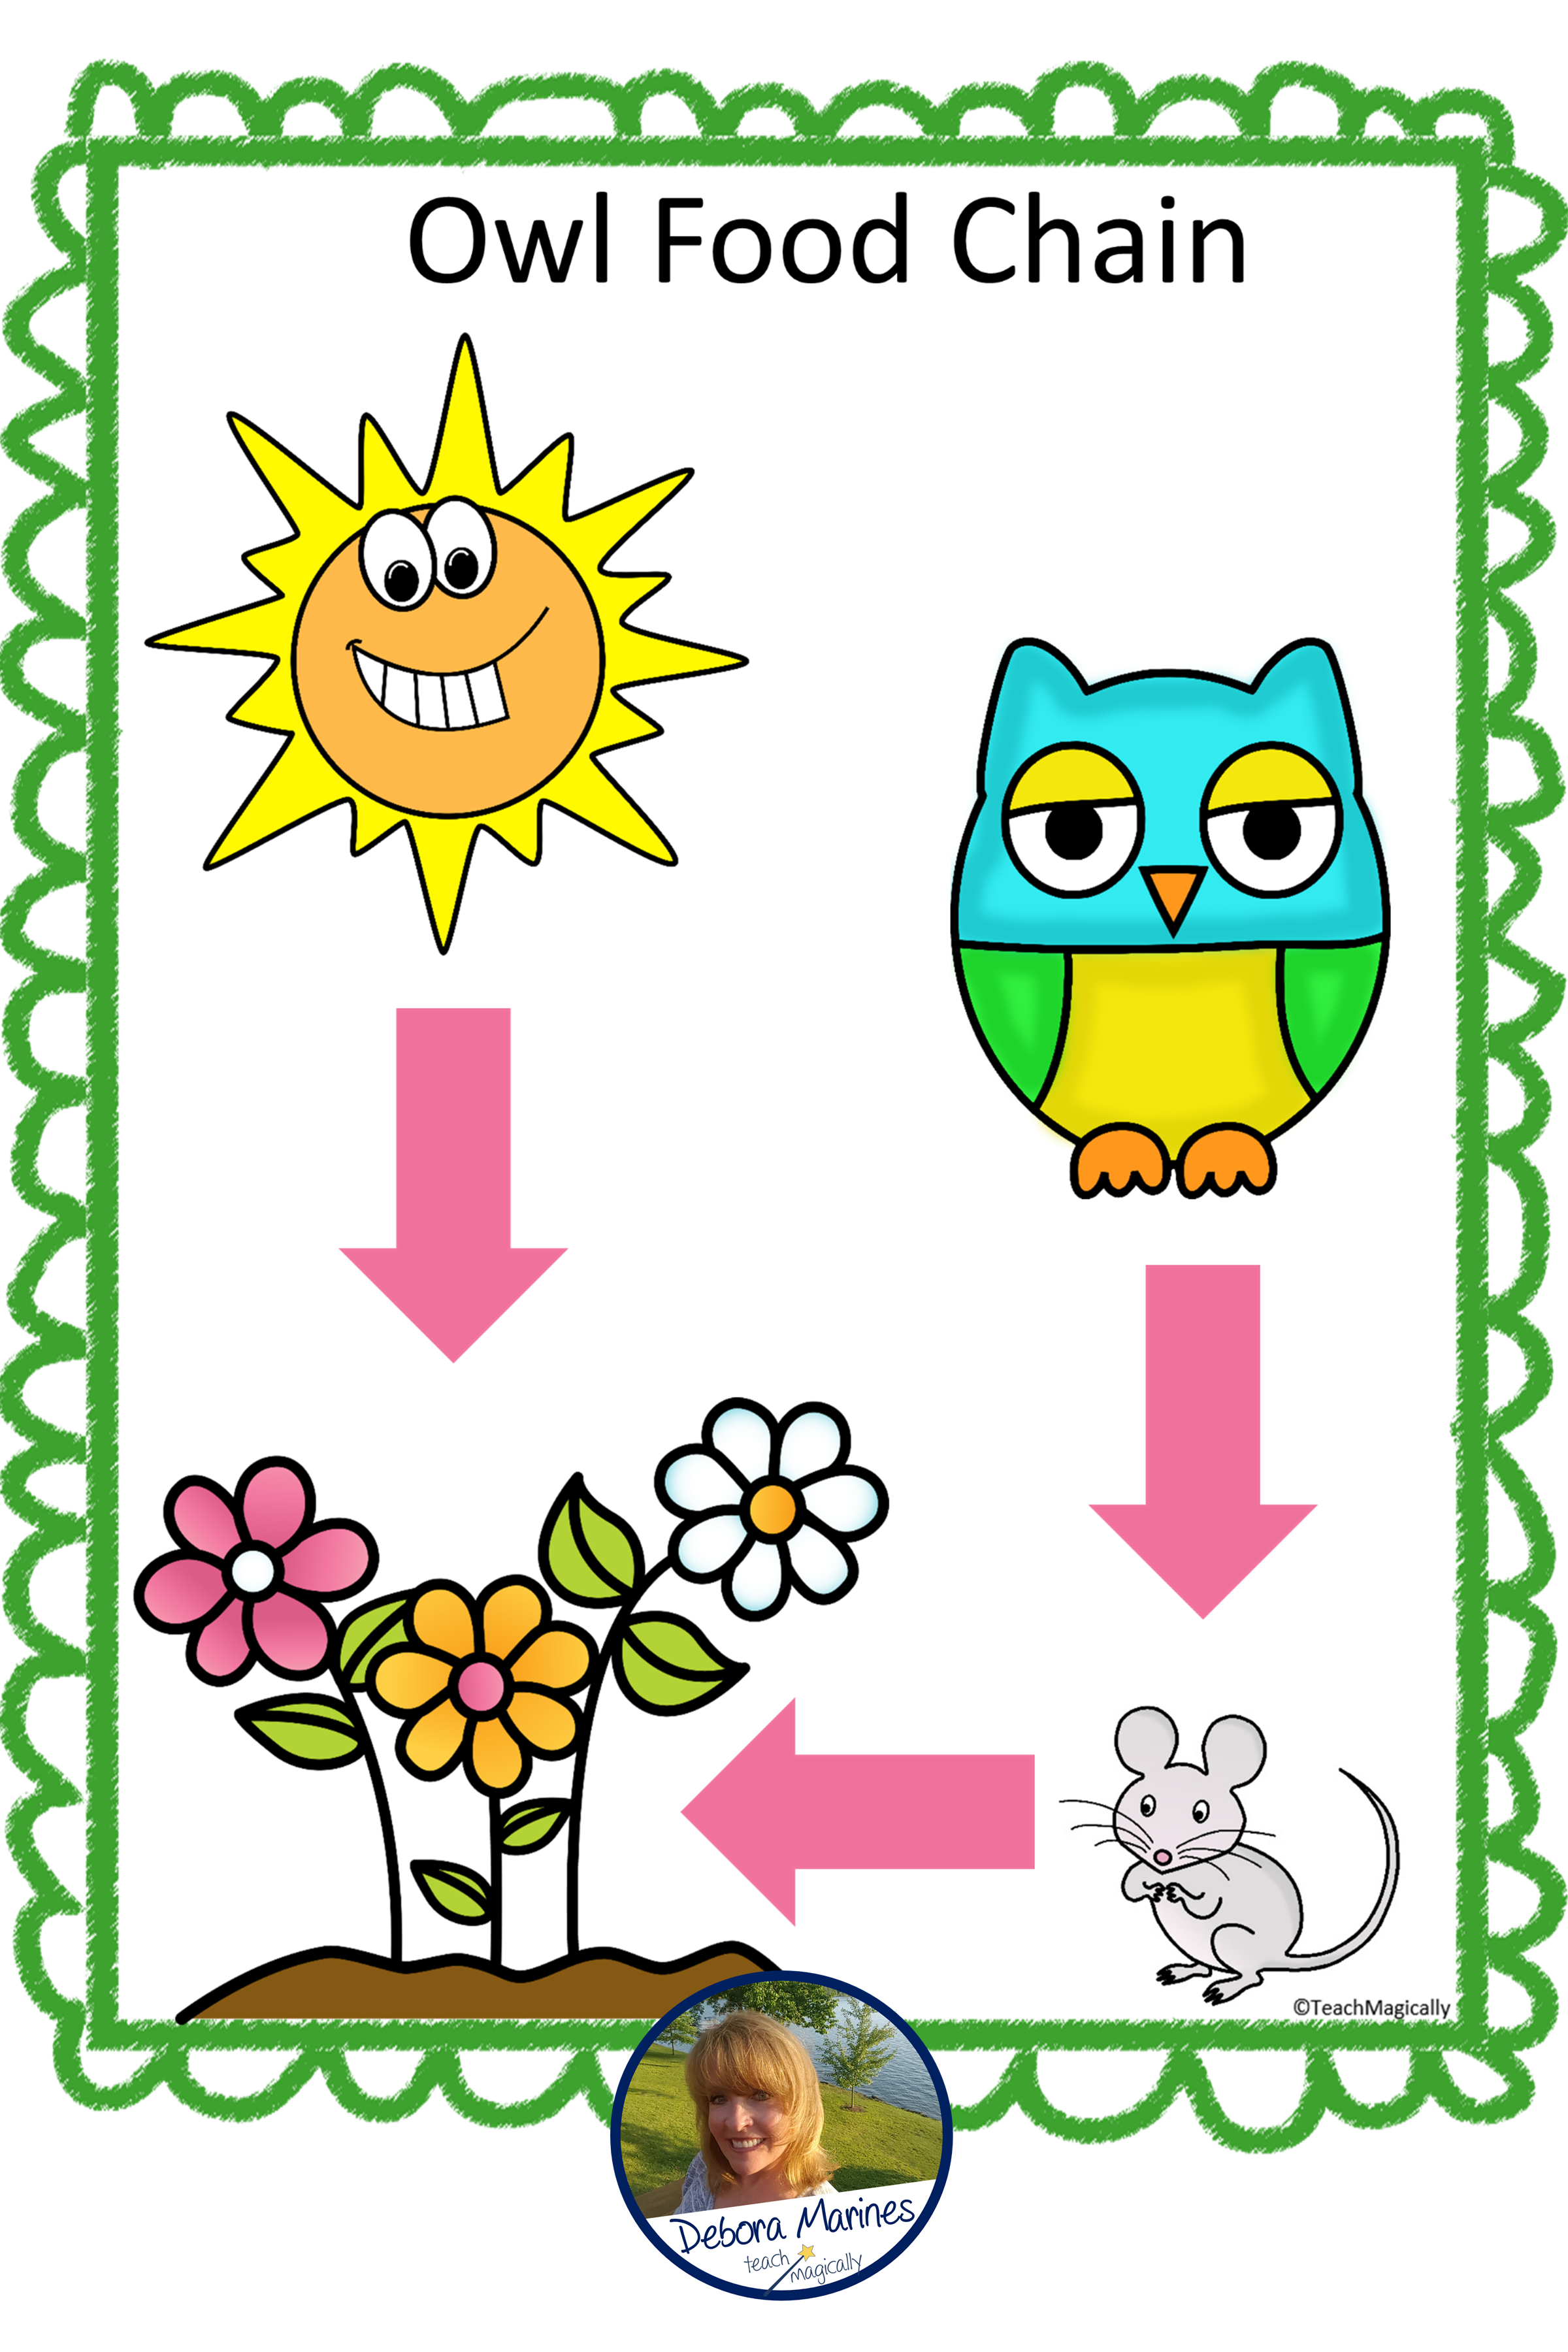 STEM Activities and Challenge Owl Food Chain Game Owl